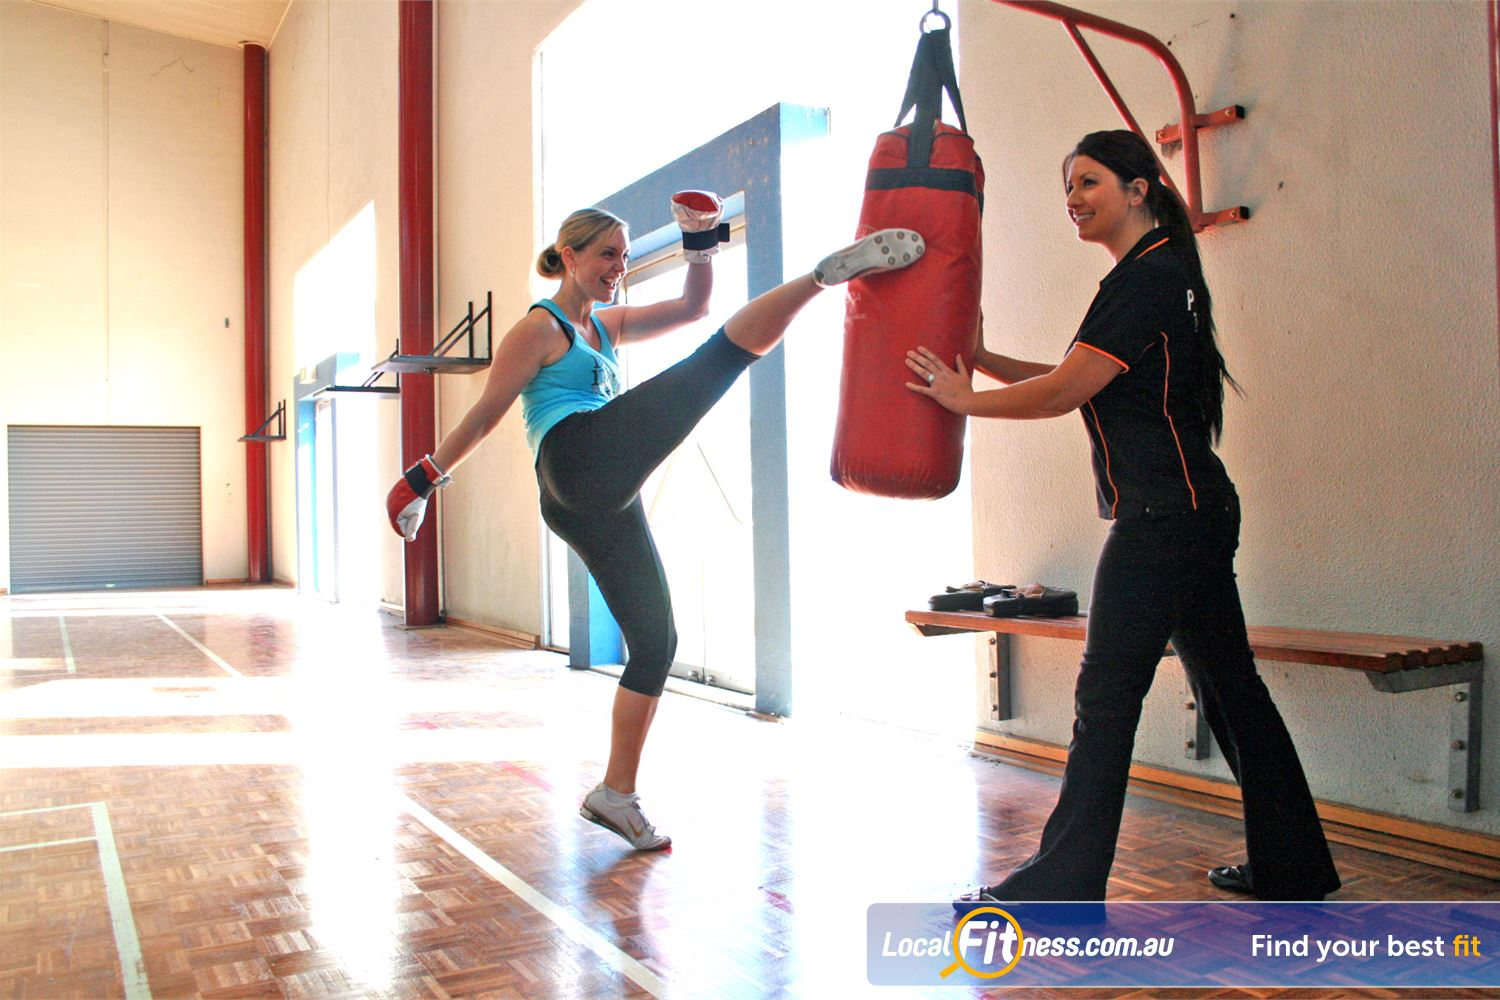 South Pacific Health Clubs Williamstown Enjoy our Boxercise classes fitness at South Pacific Williamstown.